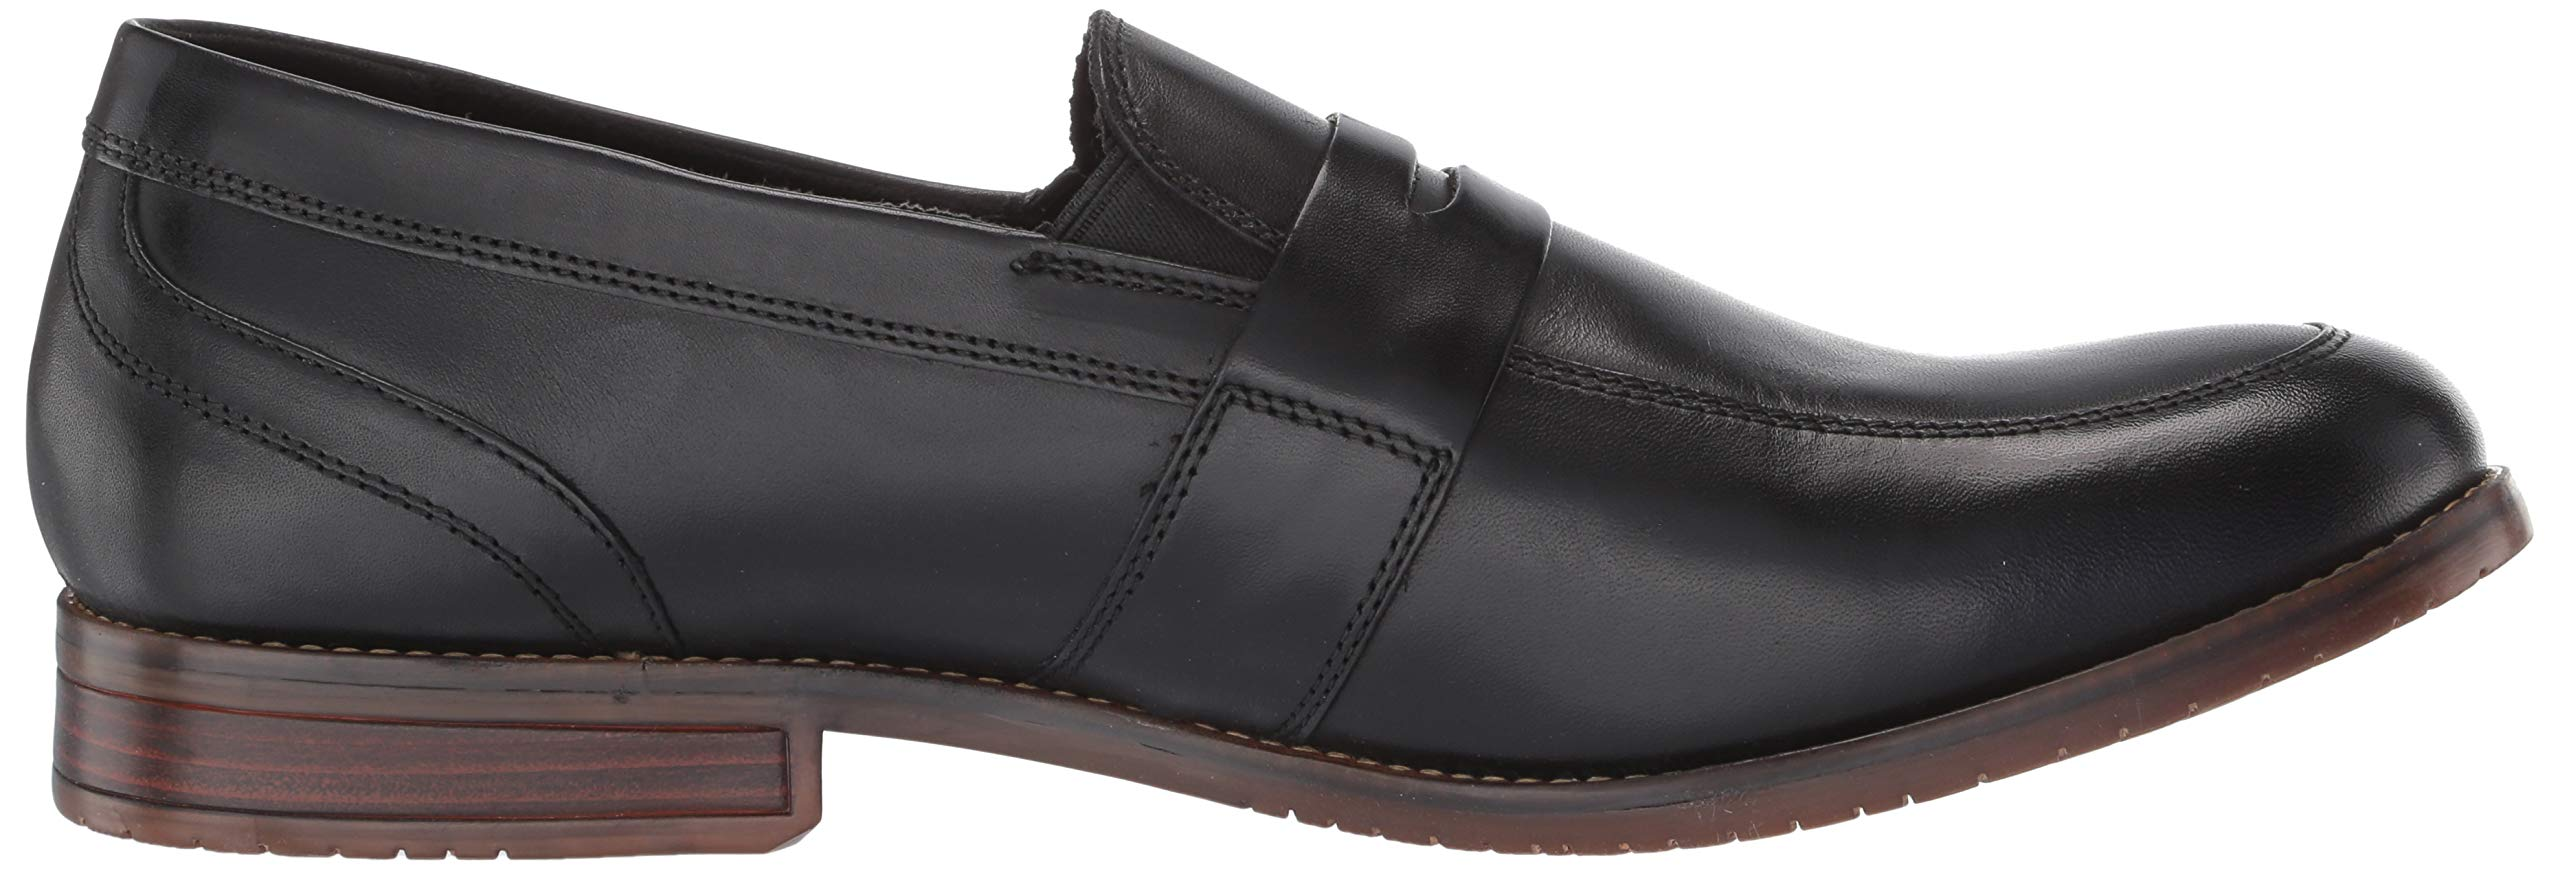 Rockport Men's Sp3 Dble Gore Penny Loafer, Black L ...